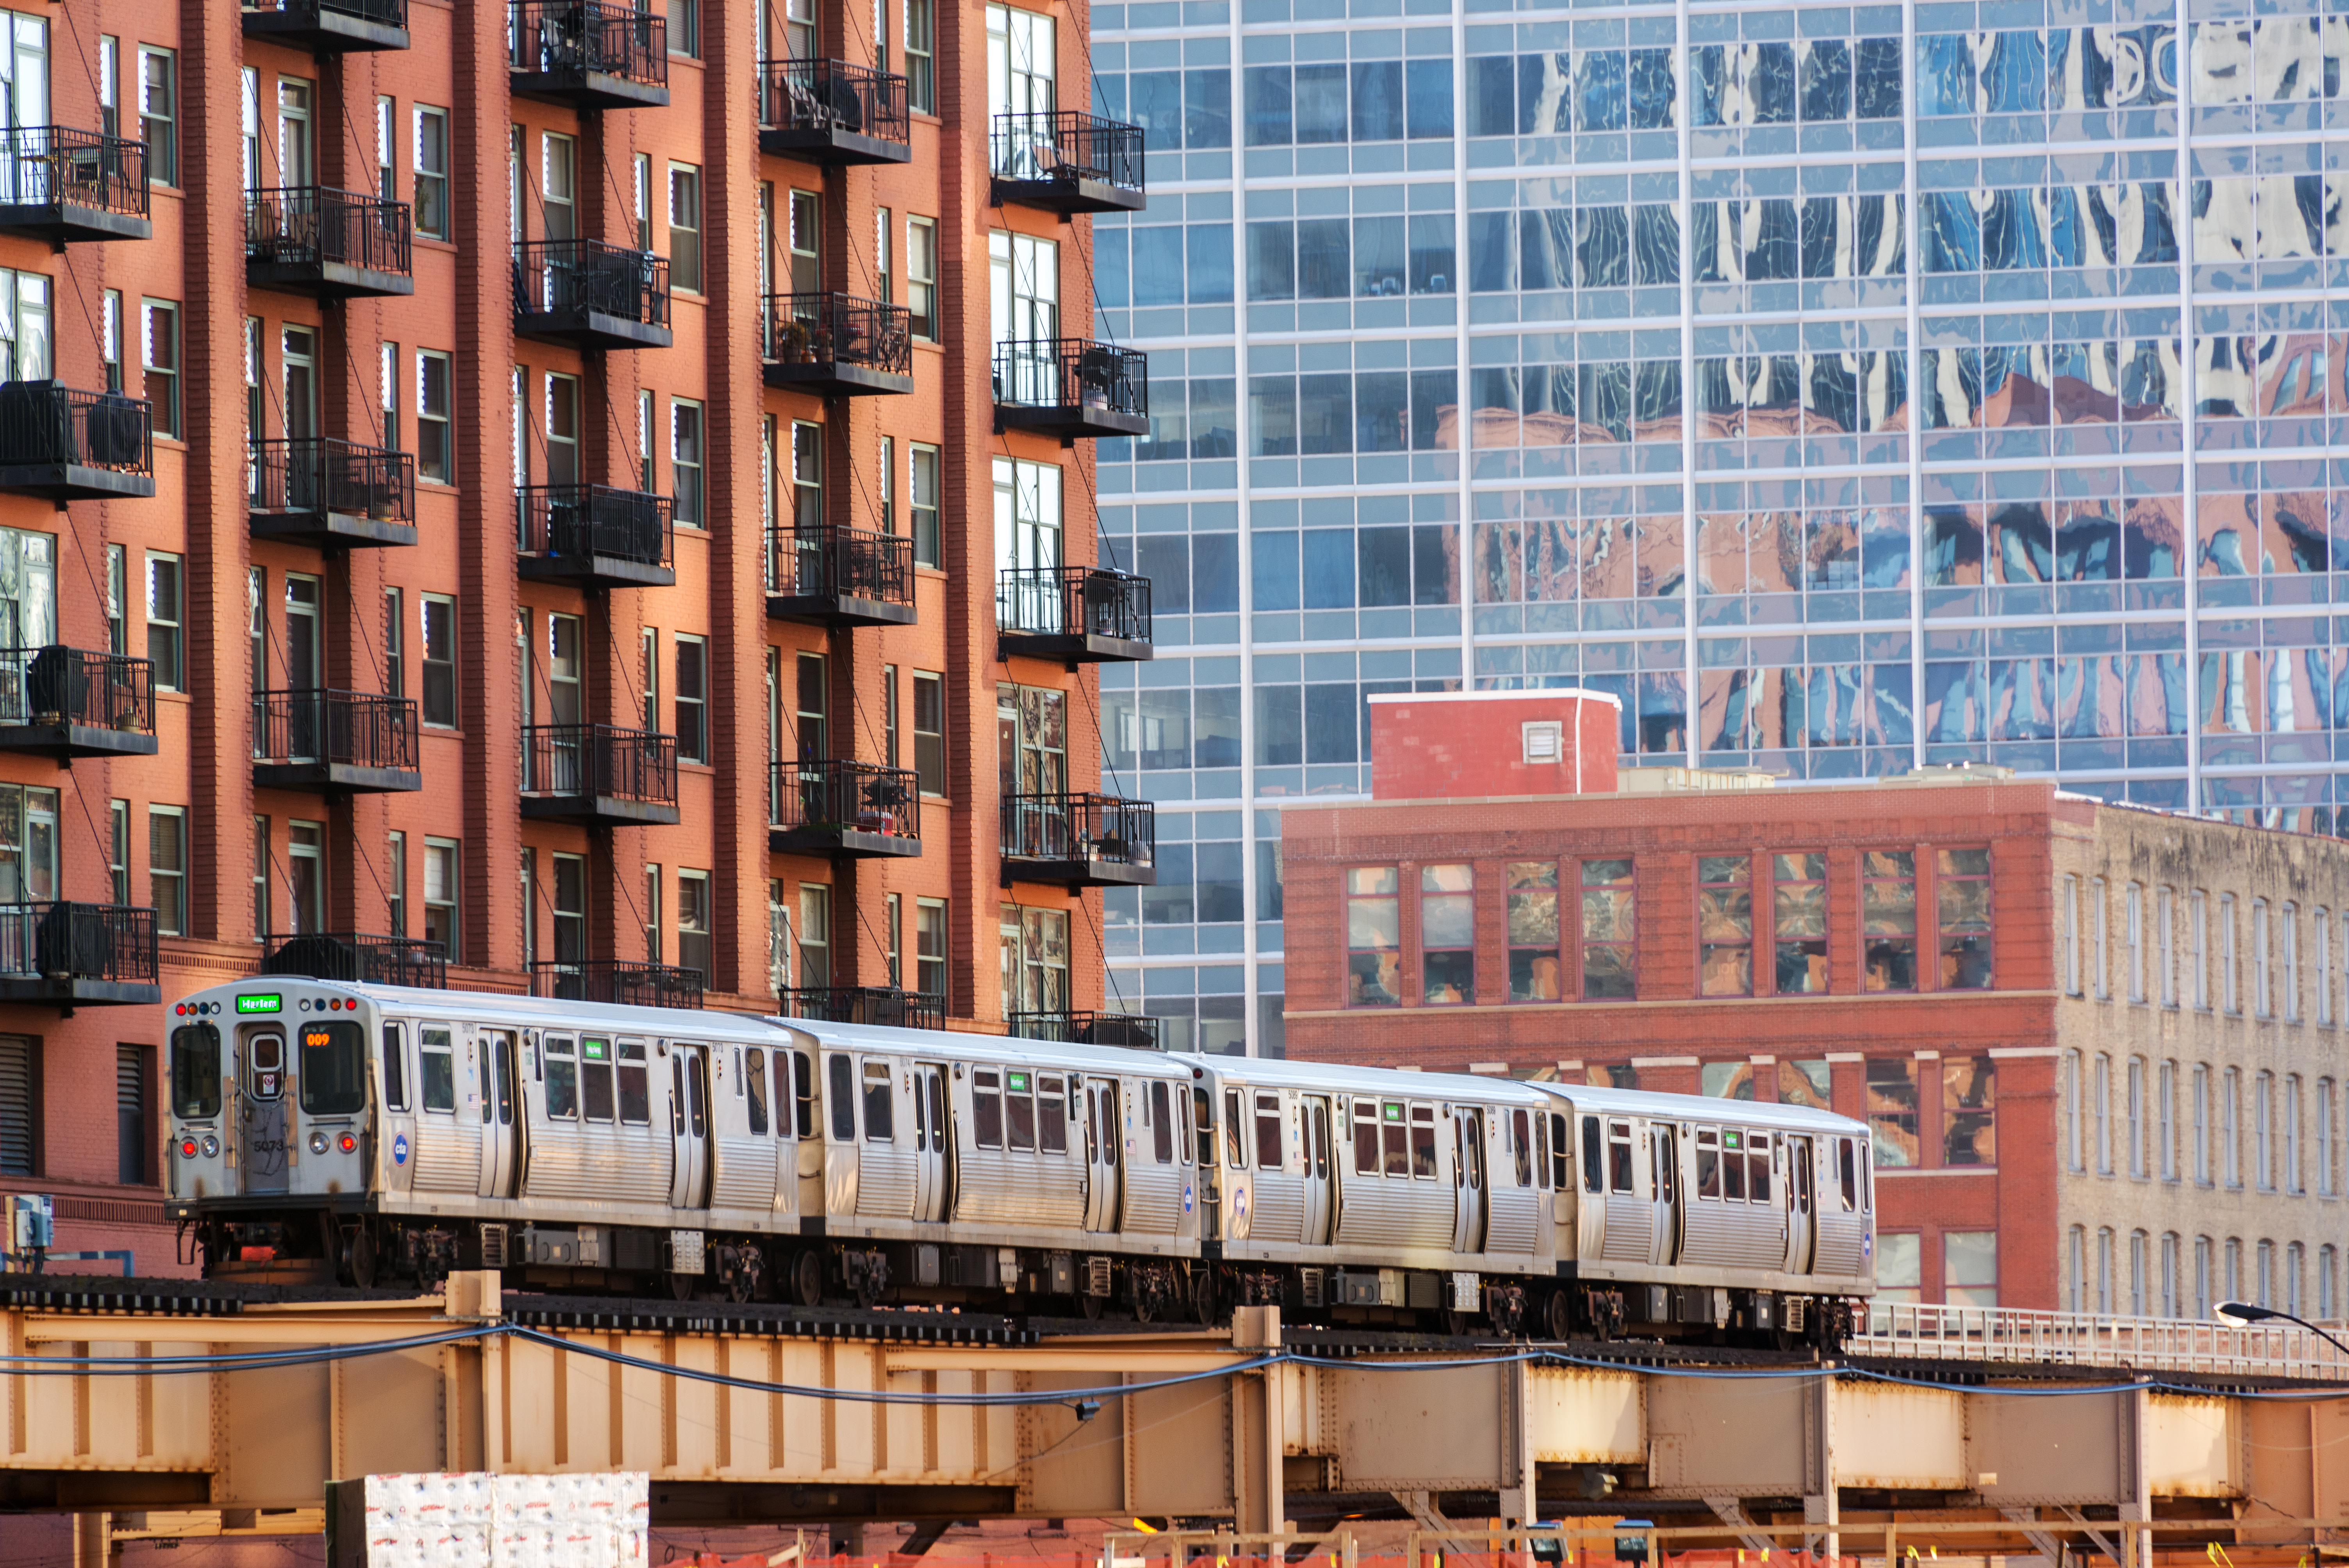 A silver train from the CTA crosses the tracks. There are brick buildings in the background of the downtown scene.